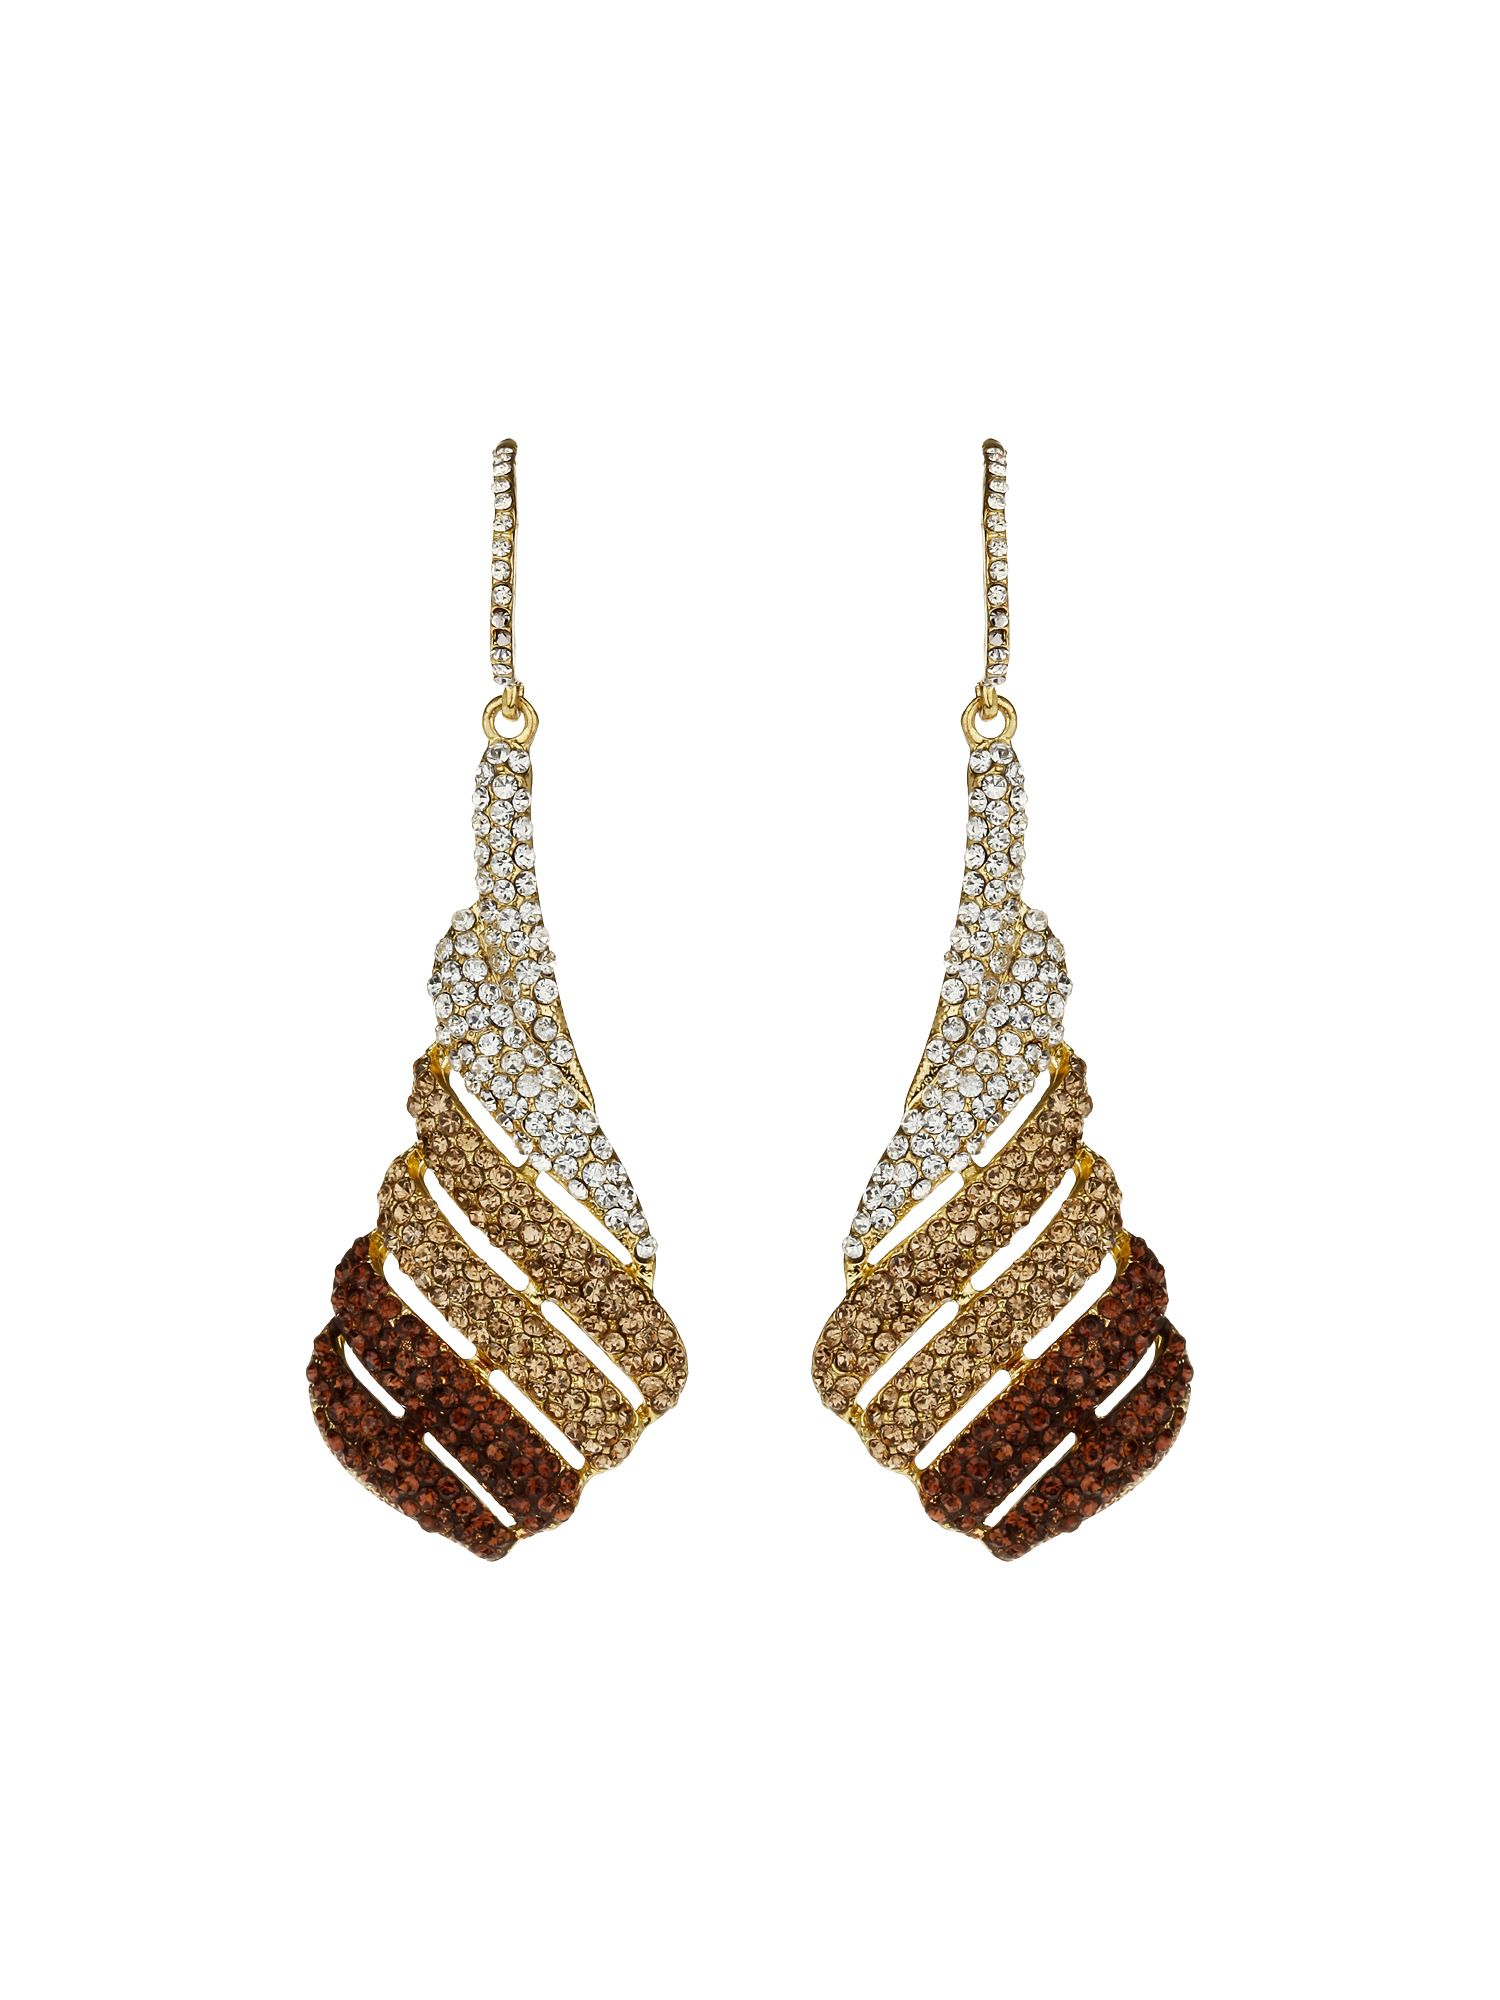 Full crystal fillagary earrings